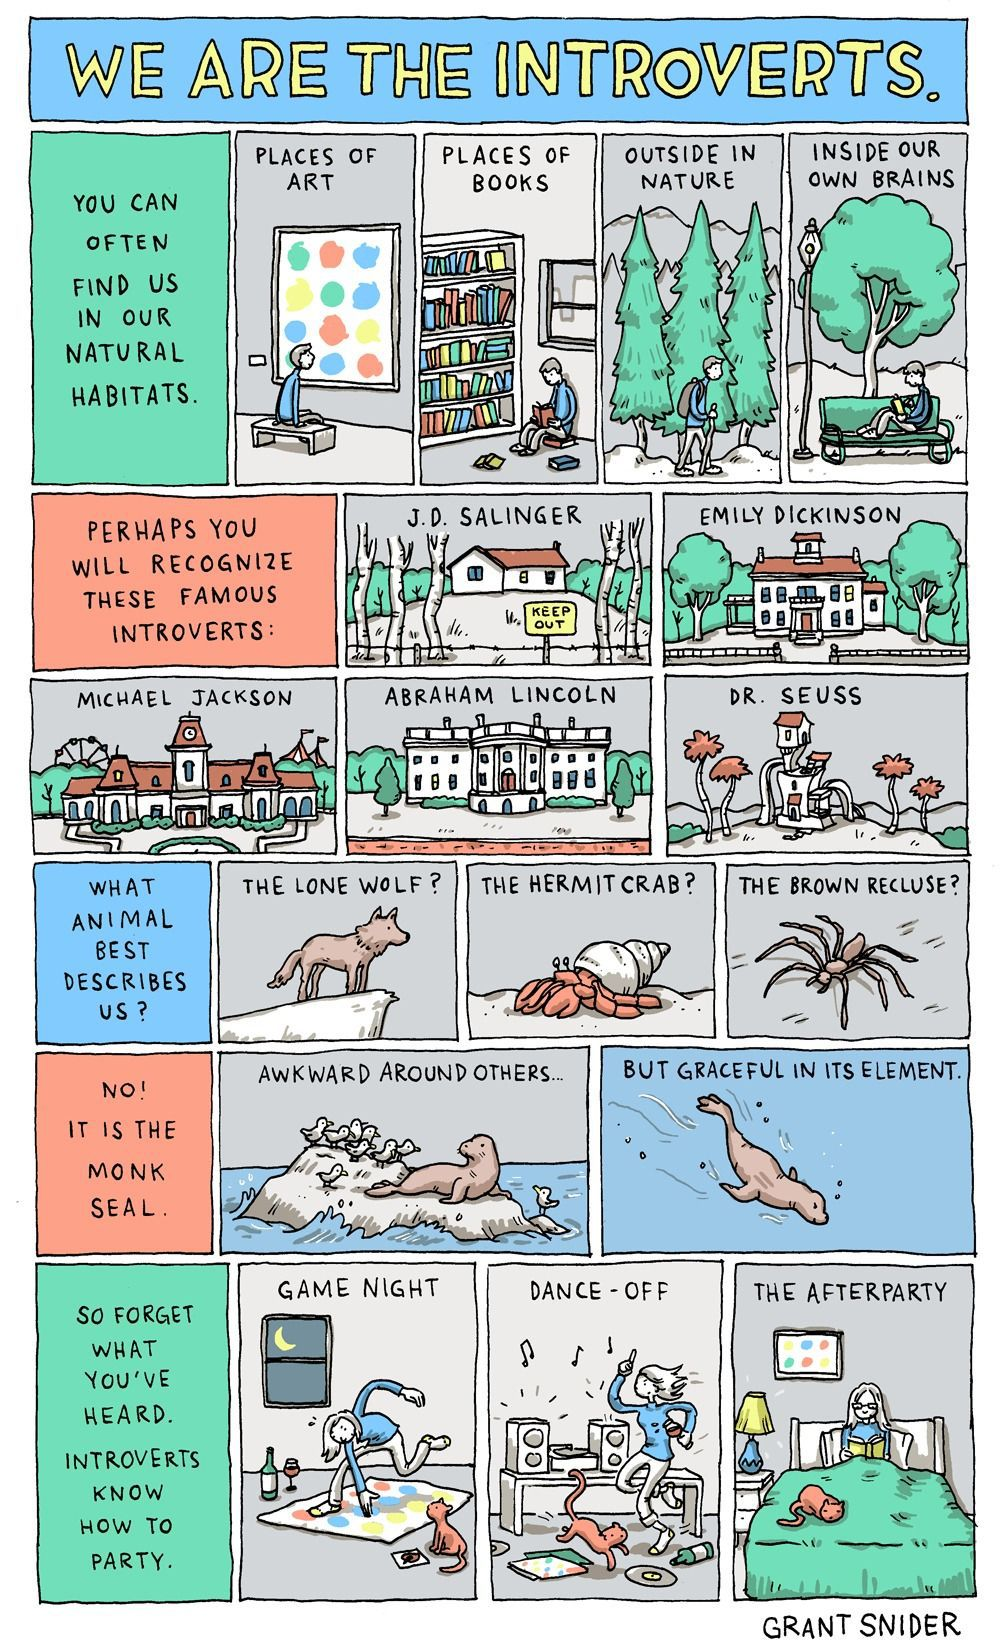 Why Introverts Have All the Fun